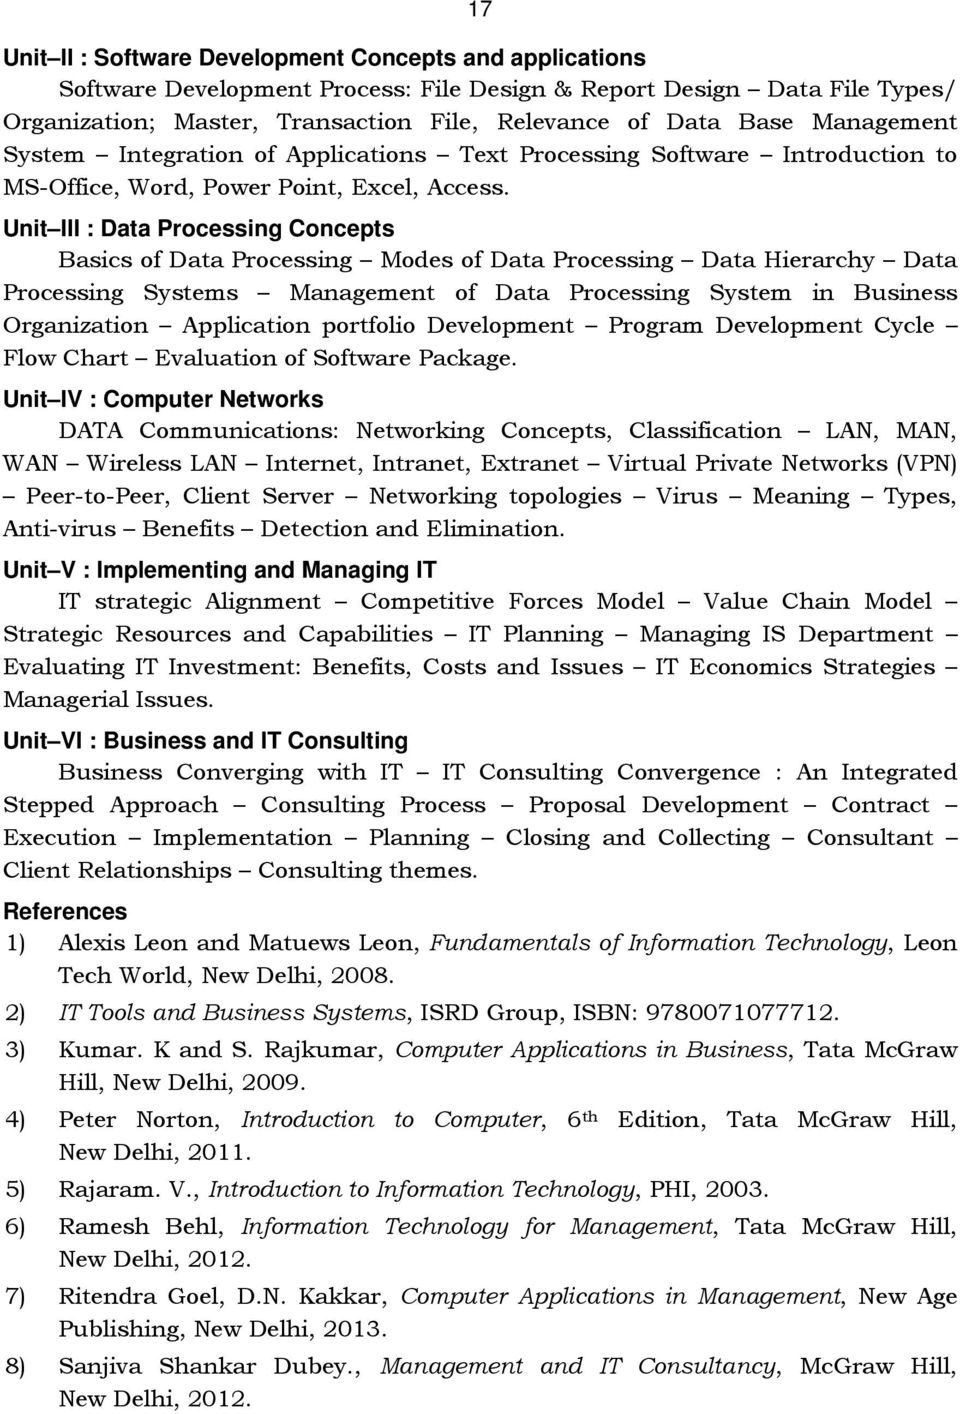 Unit III : Data Processing Concepts Basics of Data Processing Modes of Data Processing Data Hierarchy Data Processing Systems Management of Data Processing System in Business Organization Application